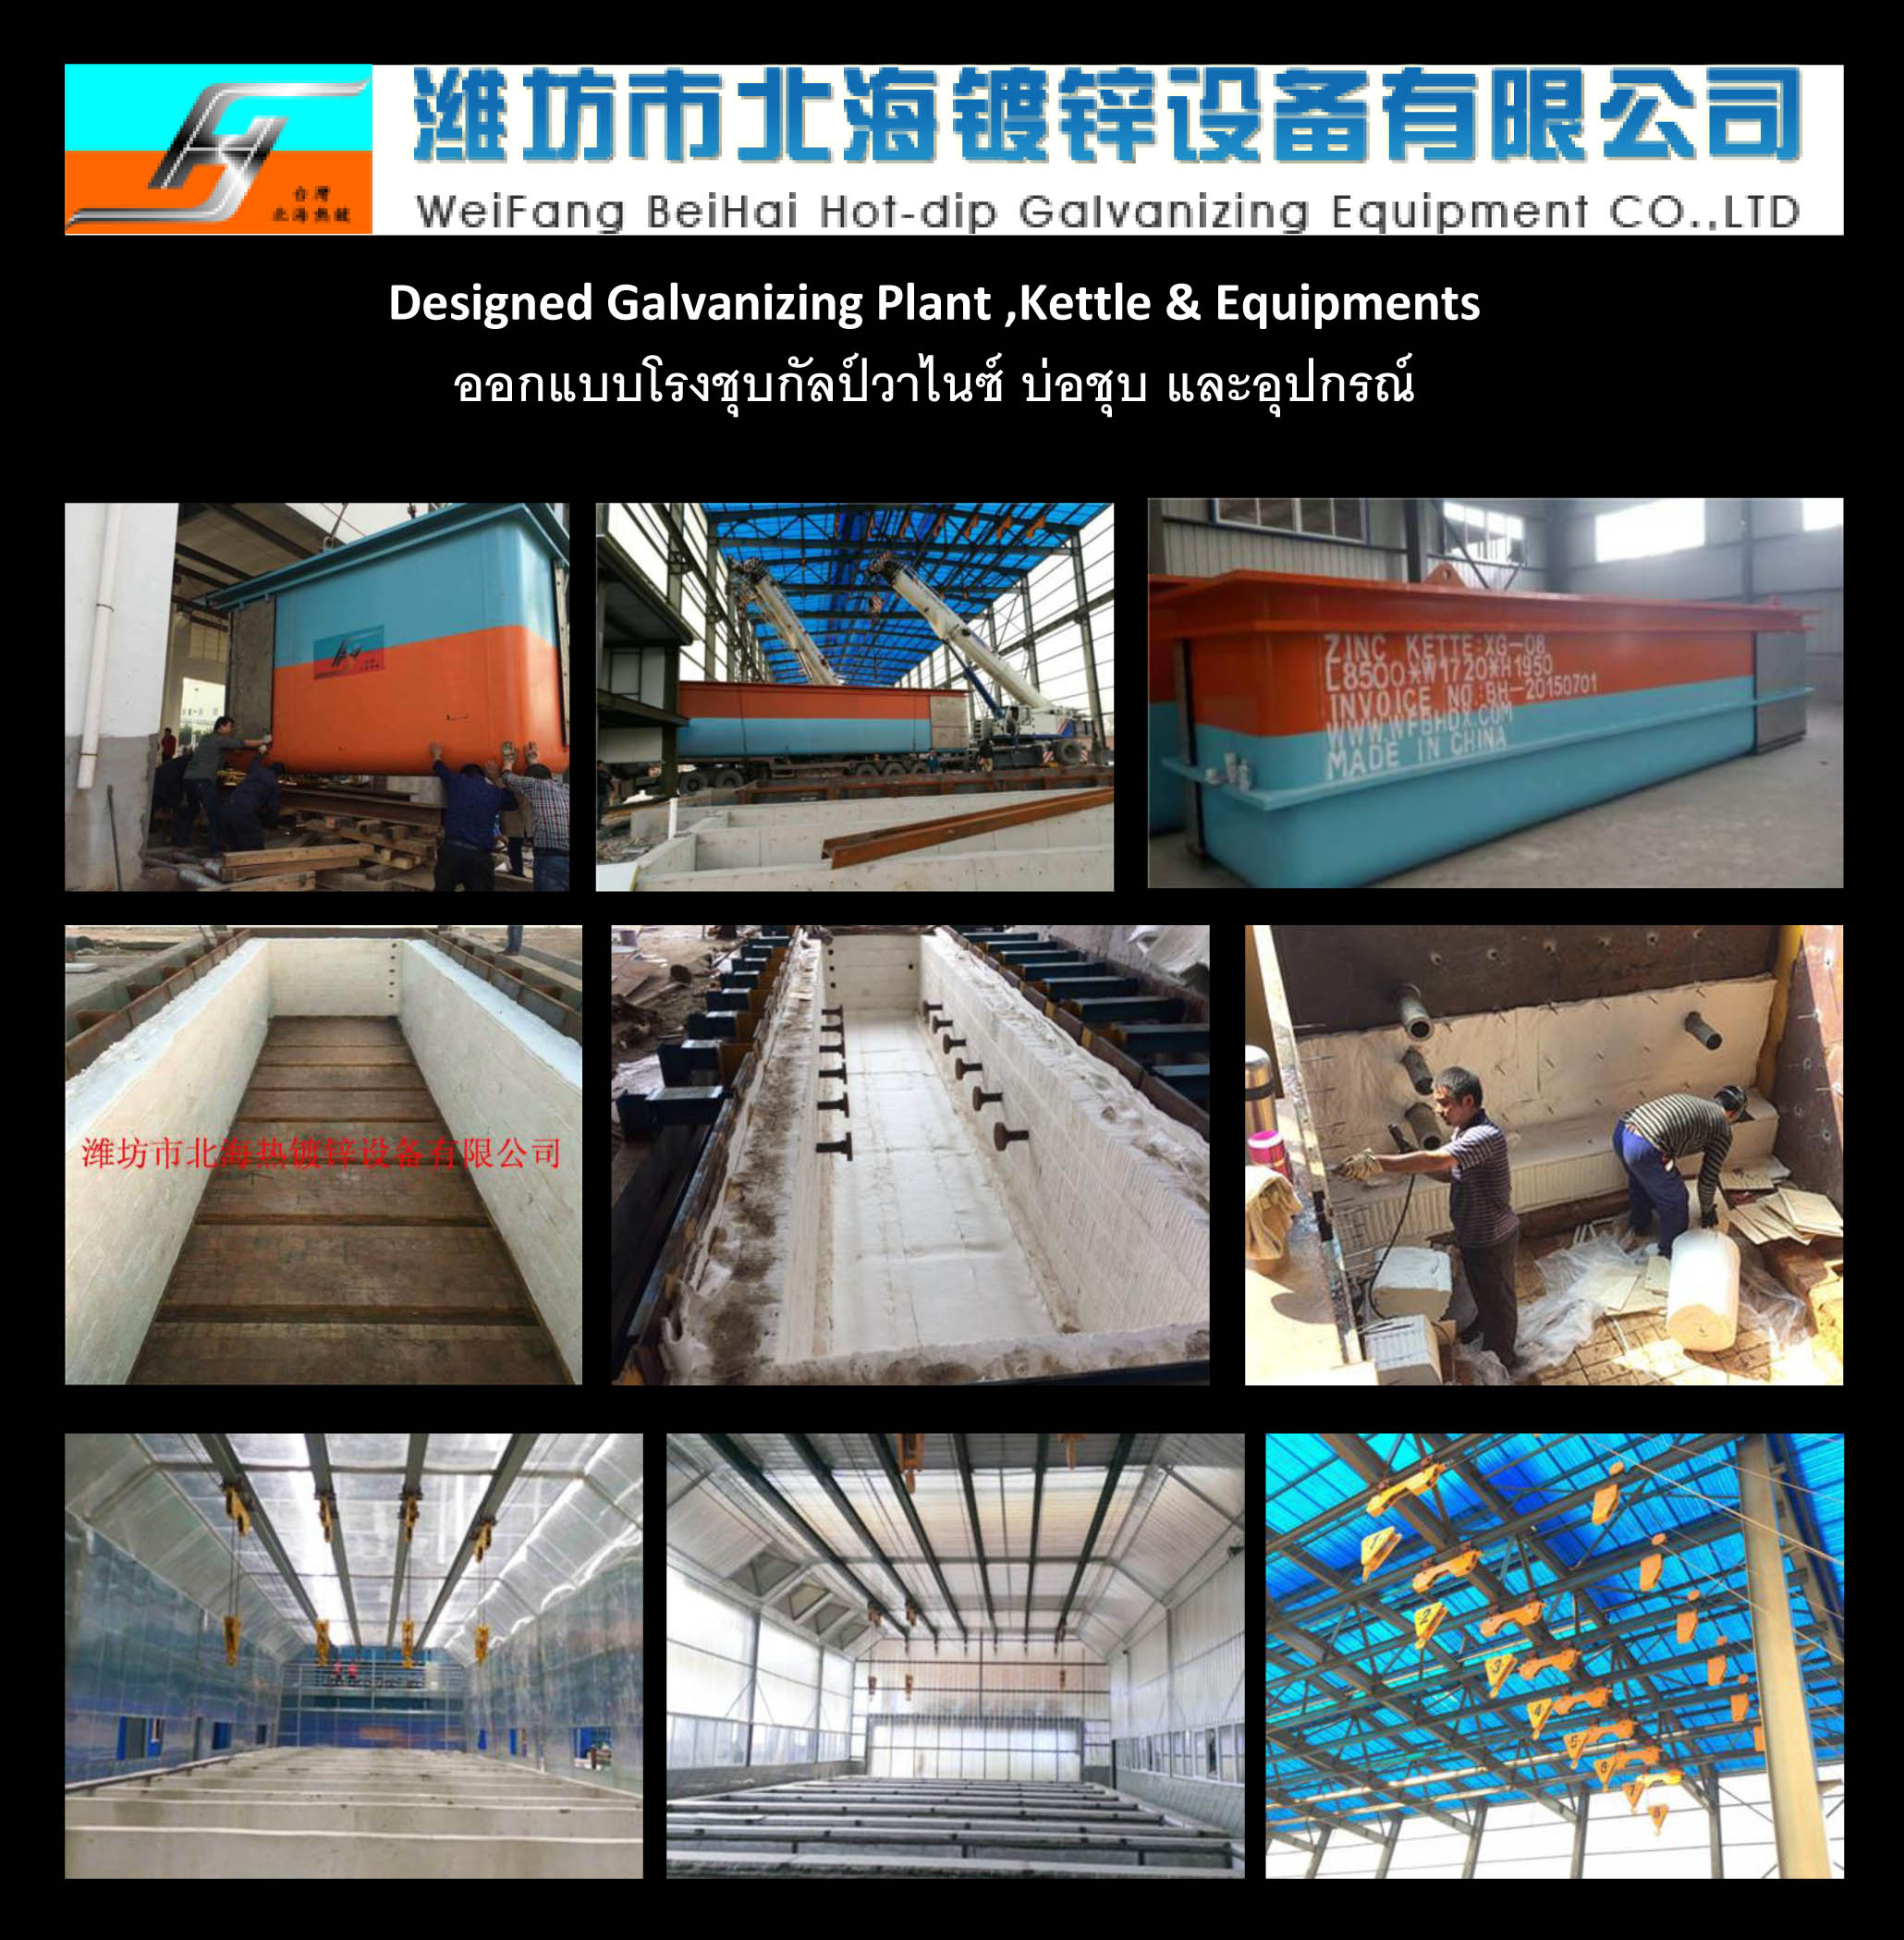 Designed Galvanizing Plant ,Kettle & Equipments